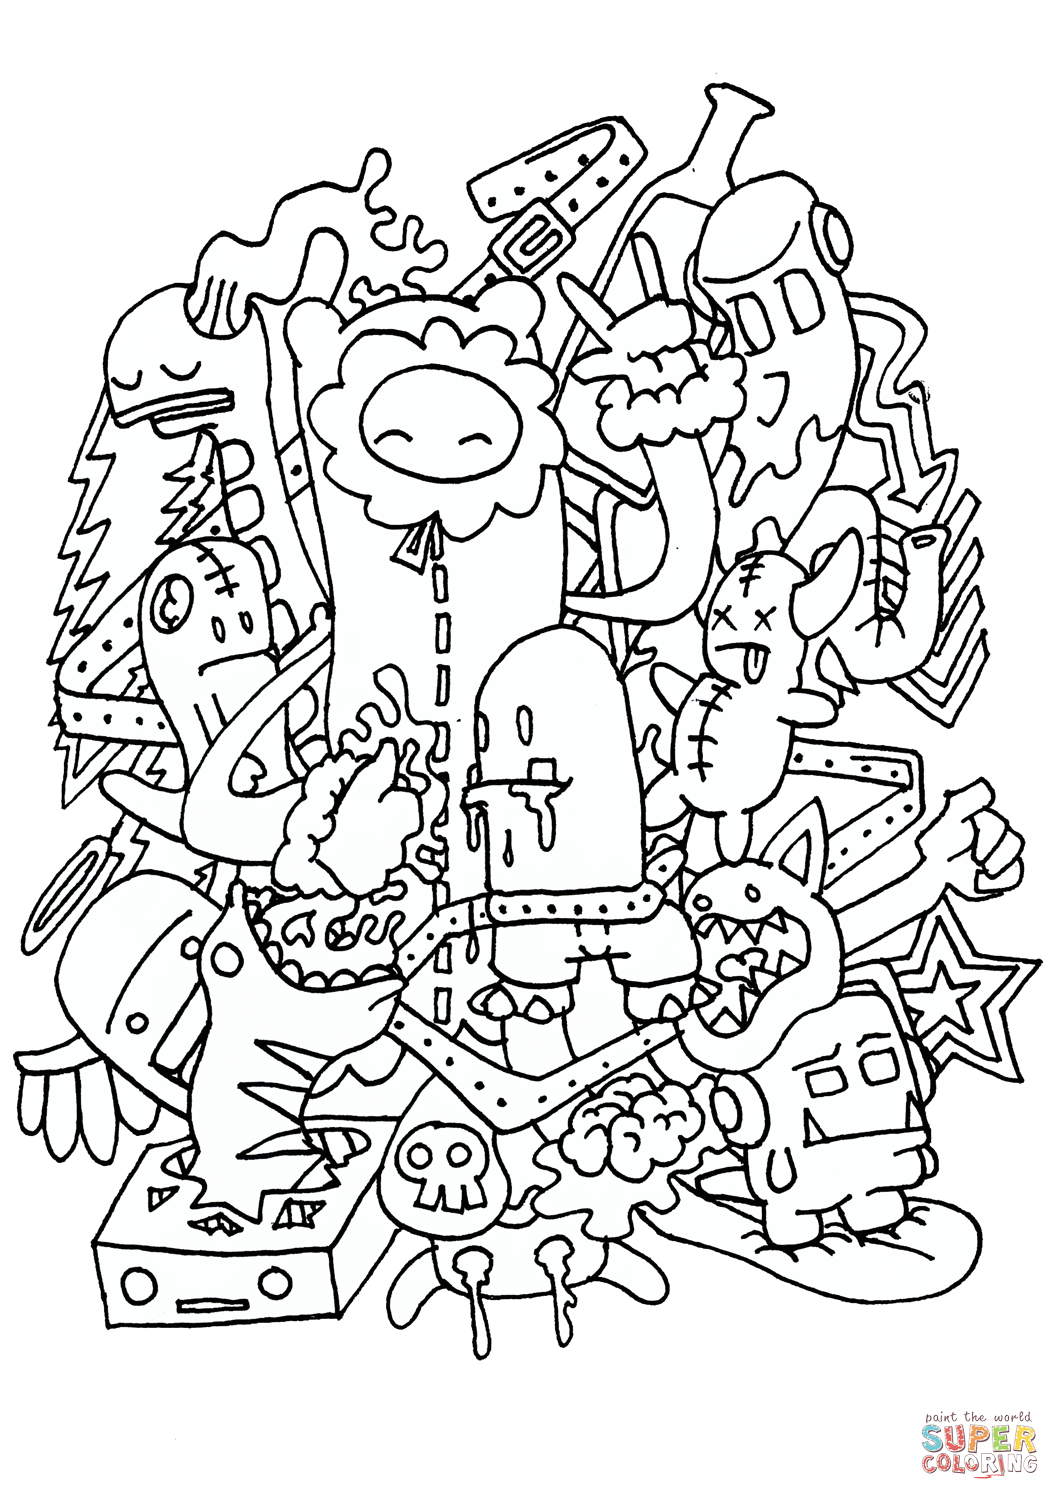 Doodle Rocking Coloring Page